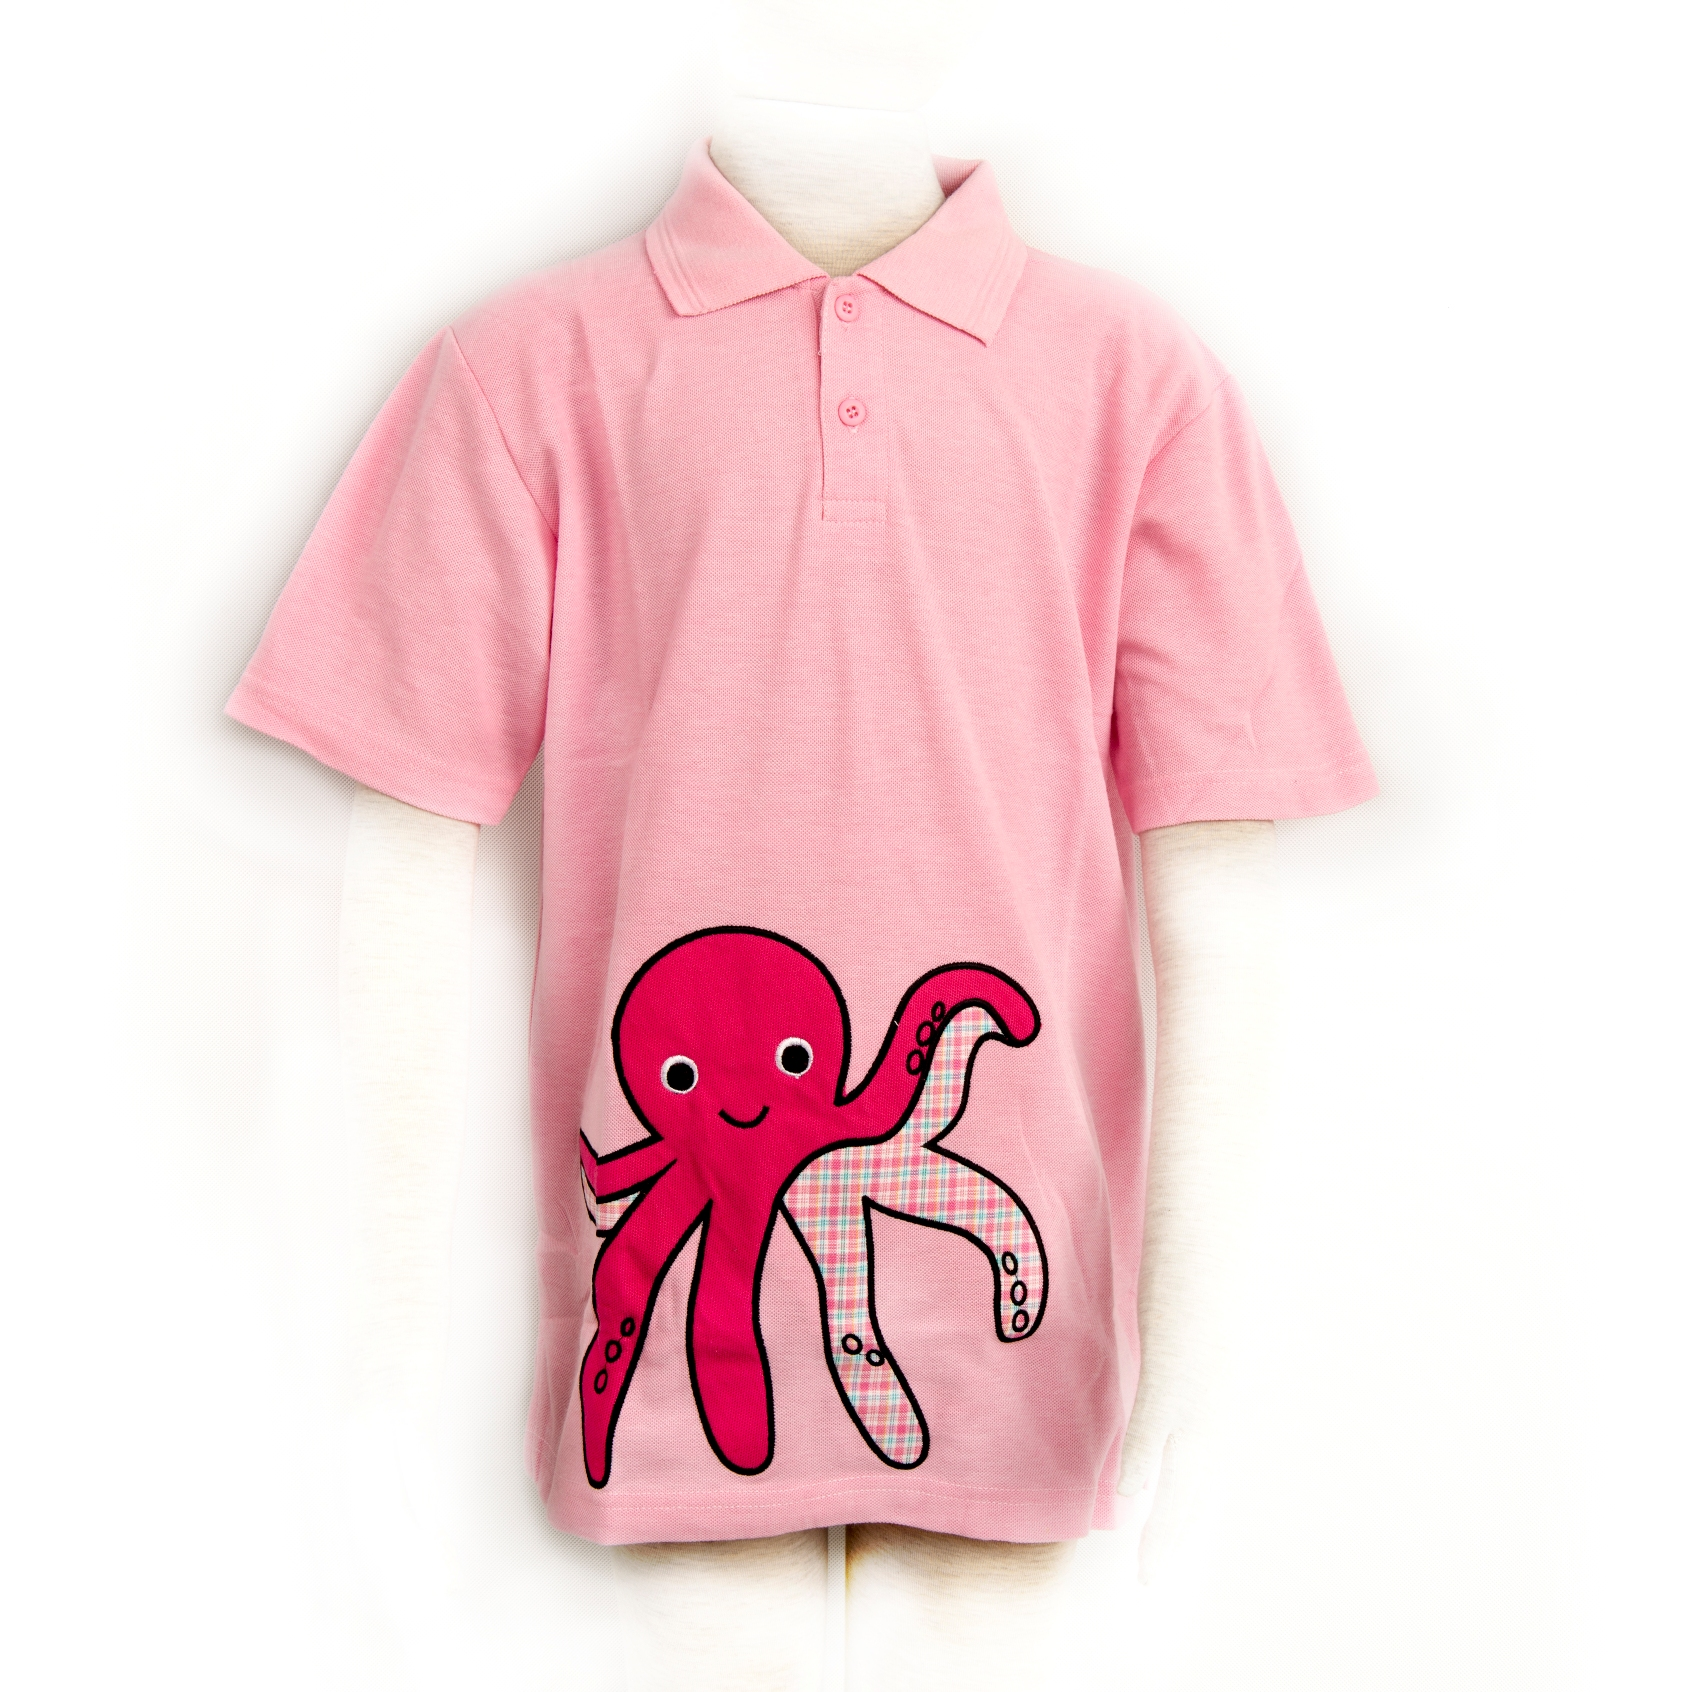 Girl Octopus Poloshirt in Pink XXL